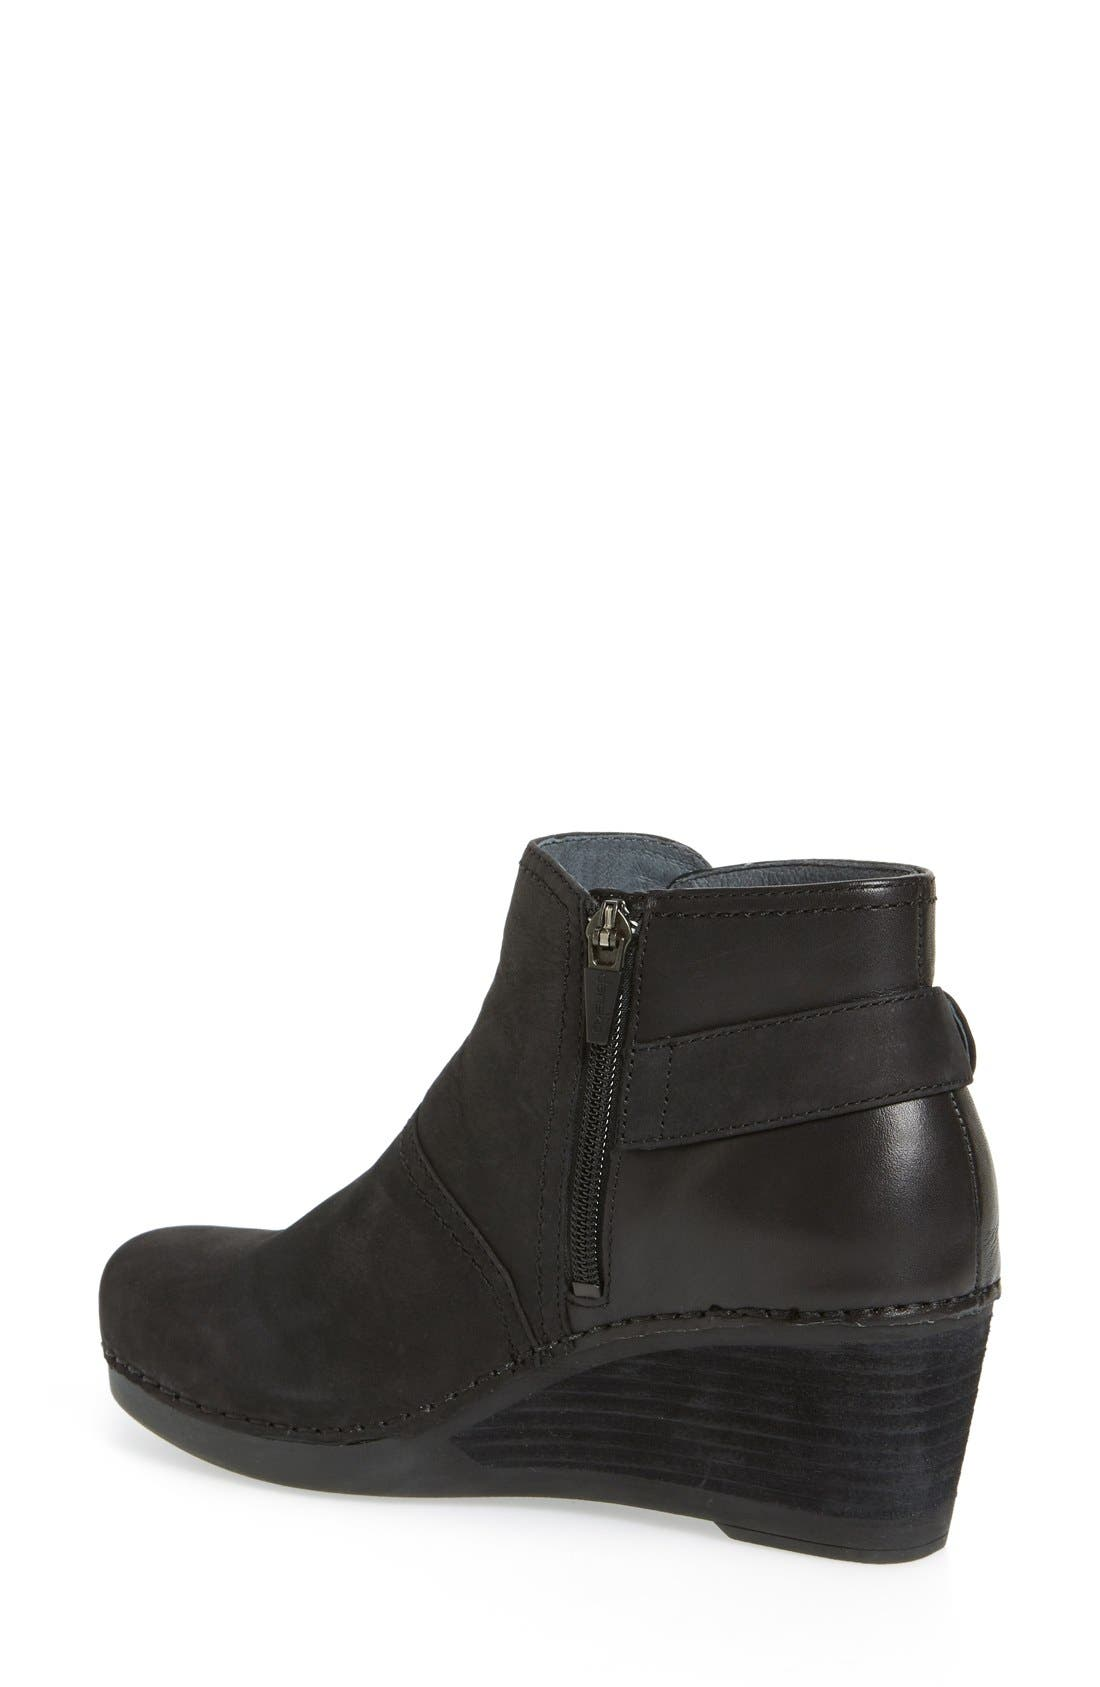 'Shirley' Wedge Bootie,                             Alternate thumbnail 3, color,                             001